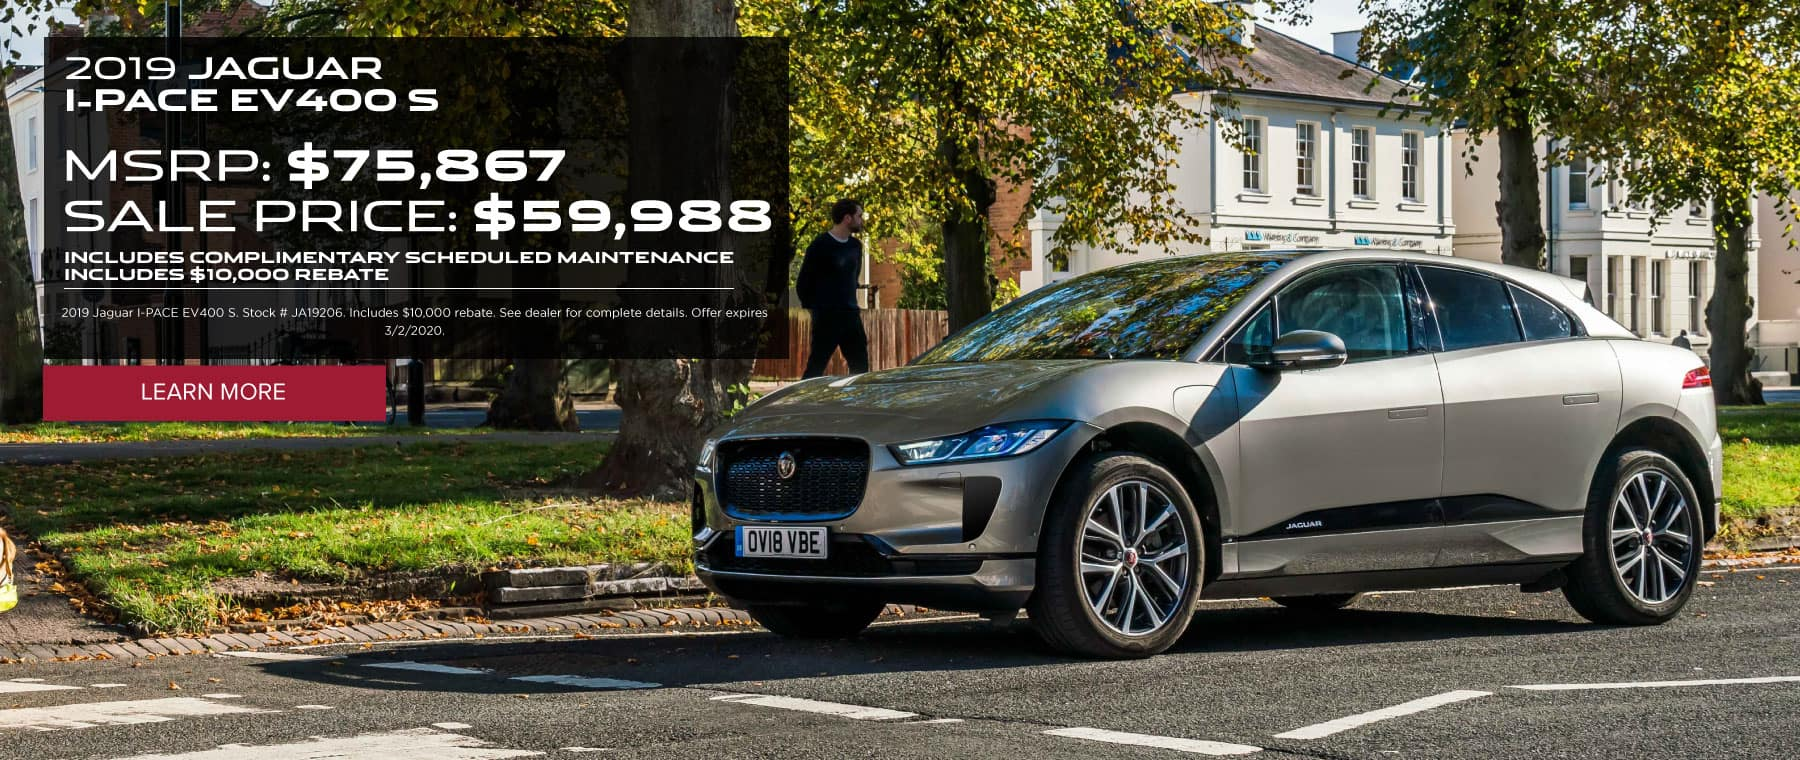 2019 JAGUAR I-PACE EV400 S. MSRP: $75,867 SALE PRICE: $59,988. INCLUDES COMPLIMENTARY SCHEDULED MAINTENANCE INCLUDES $10,000 REBATE. 2019 Jaguar I-PACE EV400 S. Stock # JA19206. Includes $10,000 rebate. See dealer for complete details. Offer expires 3/2/2020. Click to learn more. Grey I-PACE parked in town by a park